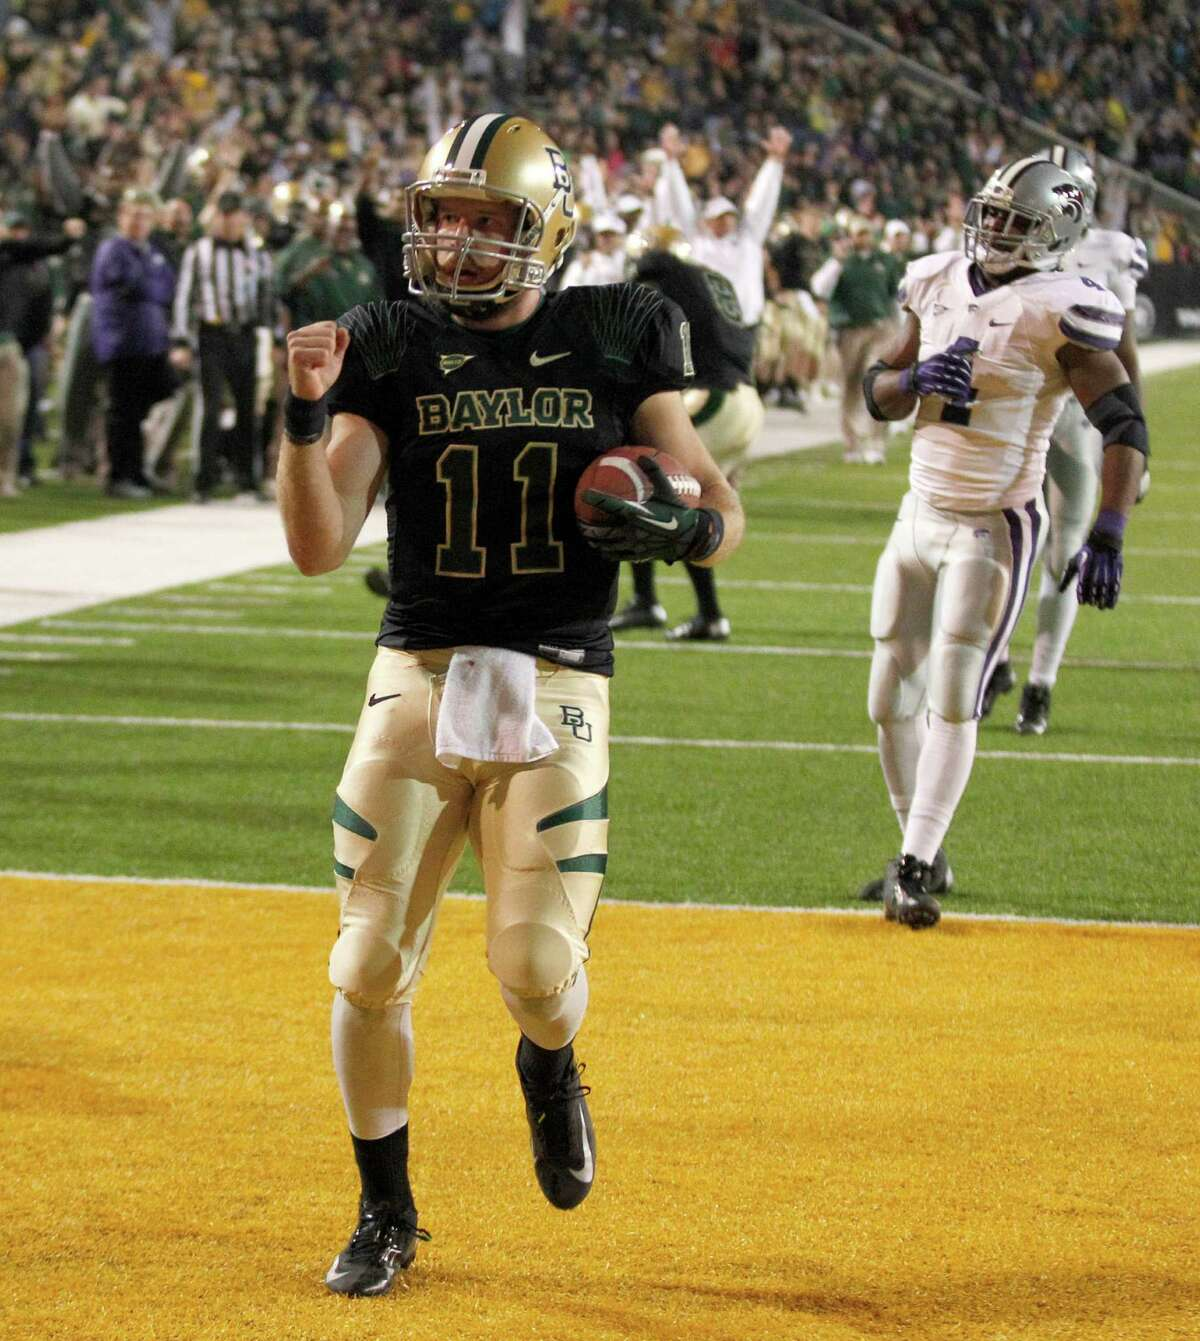 Baylor quarterback Nick Florence (11) scores a touchdown past Kansas State Wildcats linebacker Arthur Brown (4) during the first quarter of the NCAA college football game Saturday, Nov. 17, 2012, in Waco Texas. (AP Photo/LM Otero)